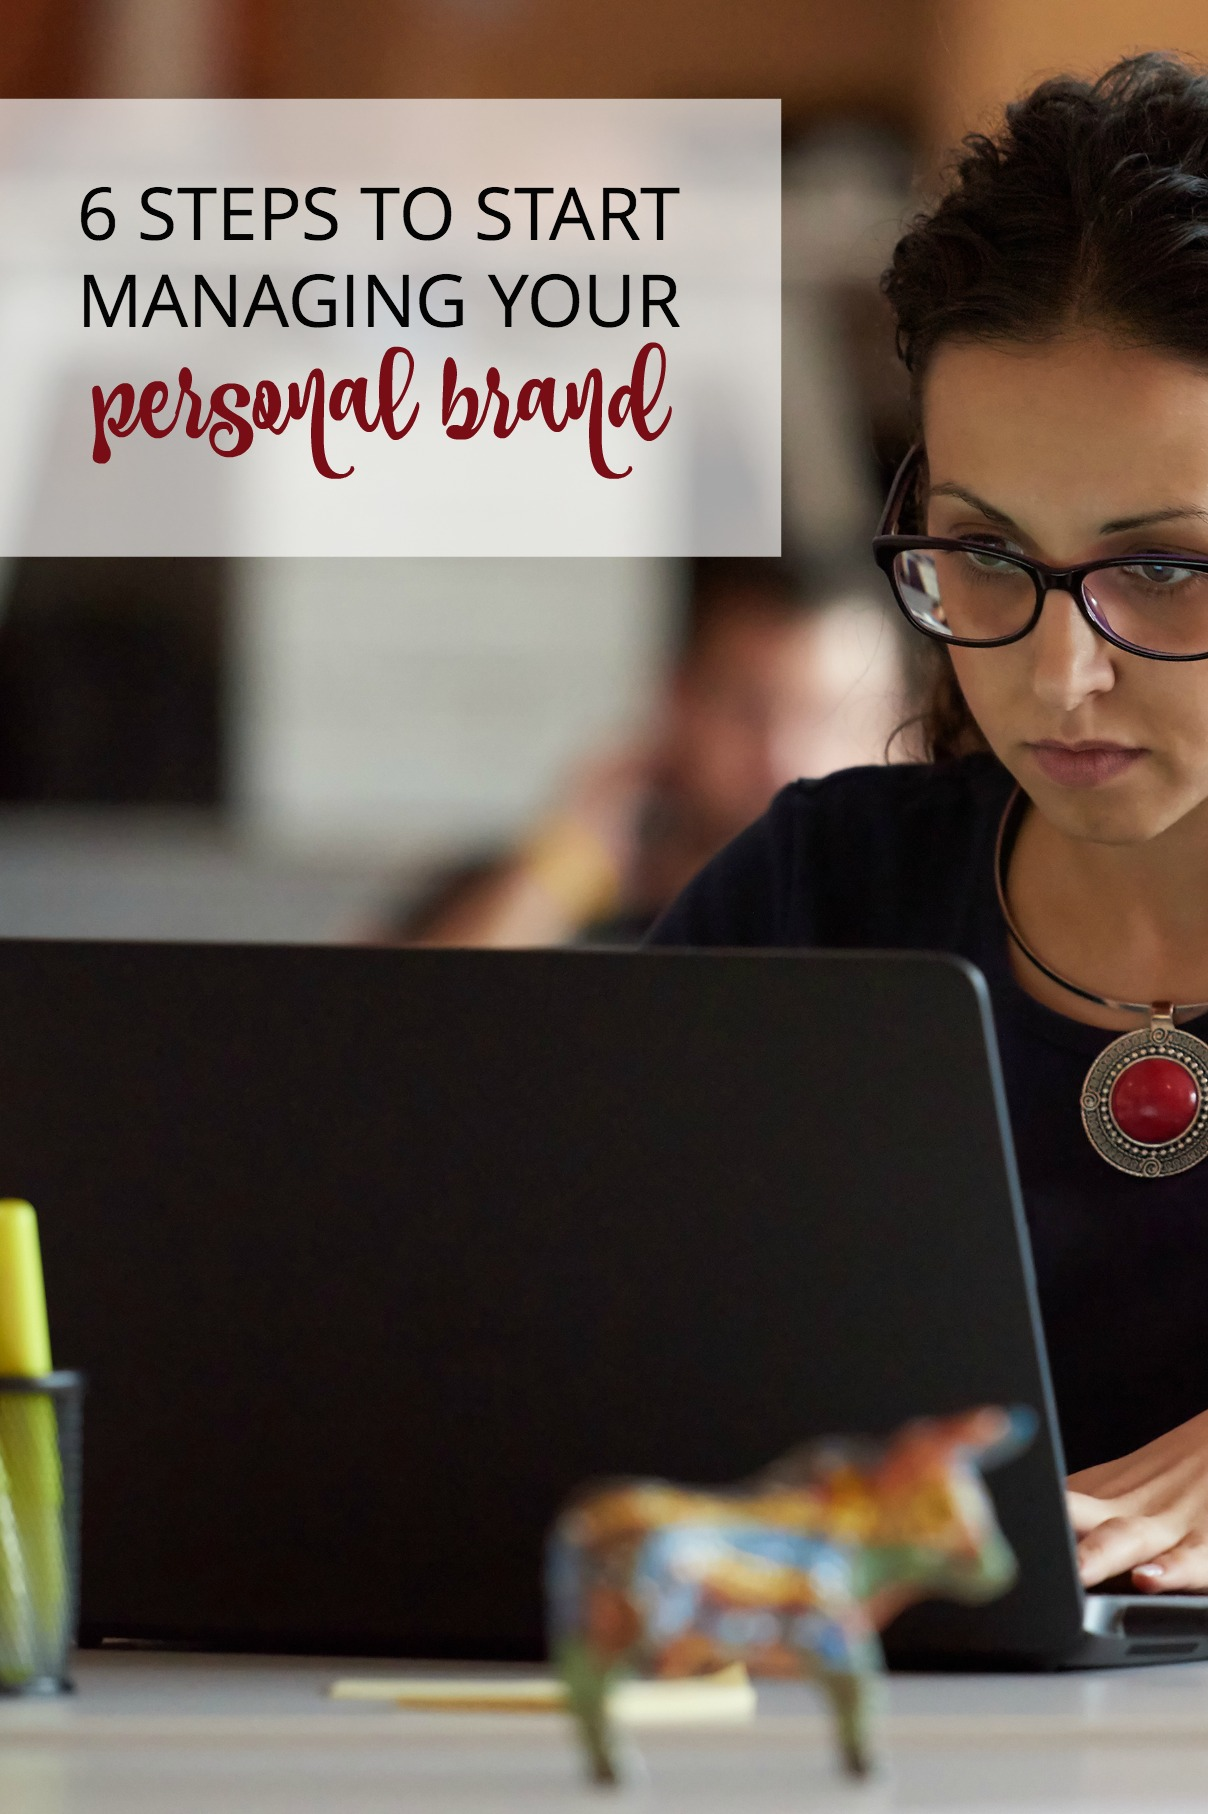 How do you care for and cultivate your personal brand? Here are some ideas to get started.